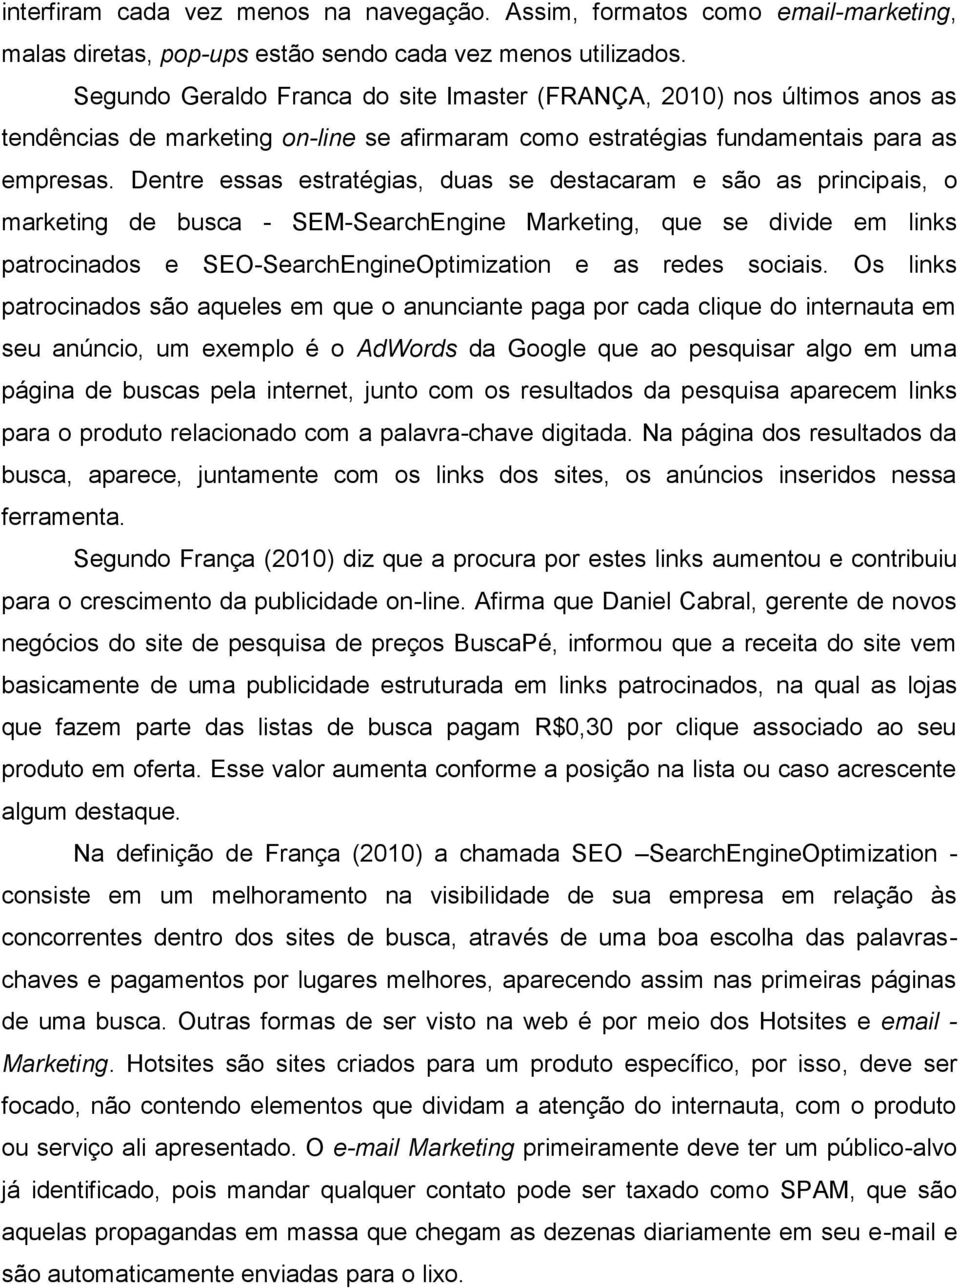 Dentre essas estratégias, duas se destacaram e são as principais, o marketing de busca - SEM-SearchEngine Marketing, que se divide em links patrocinados e SEO-SearchEngineOptimization e as redes